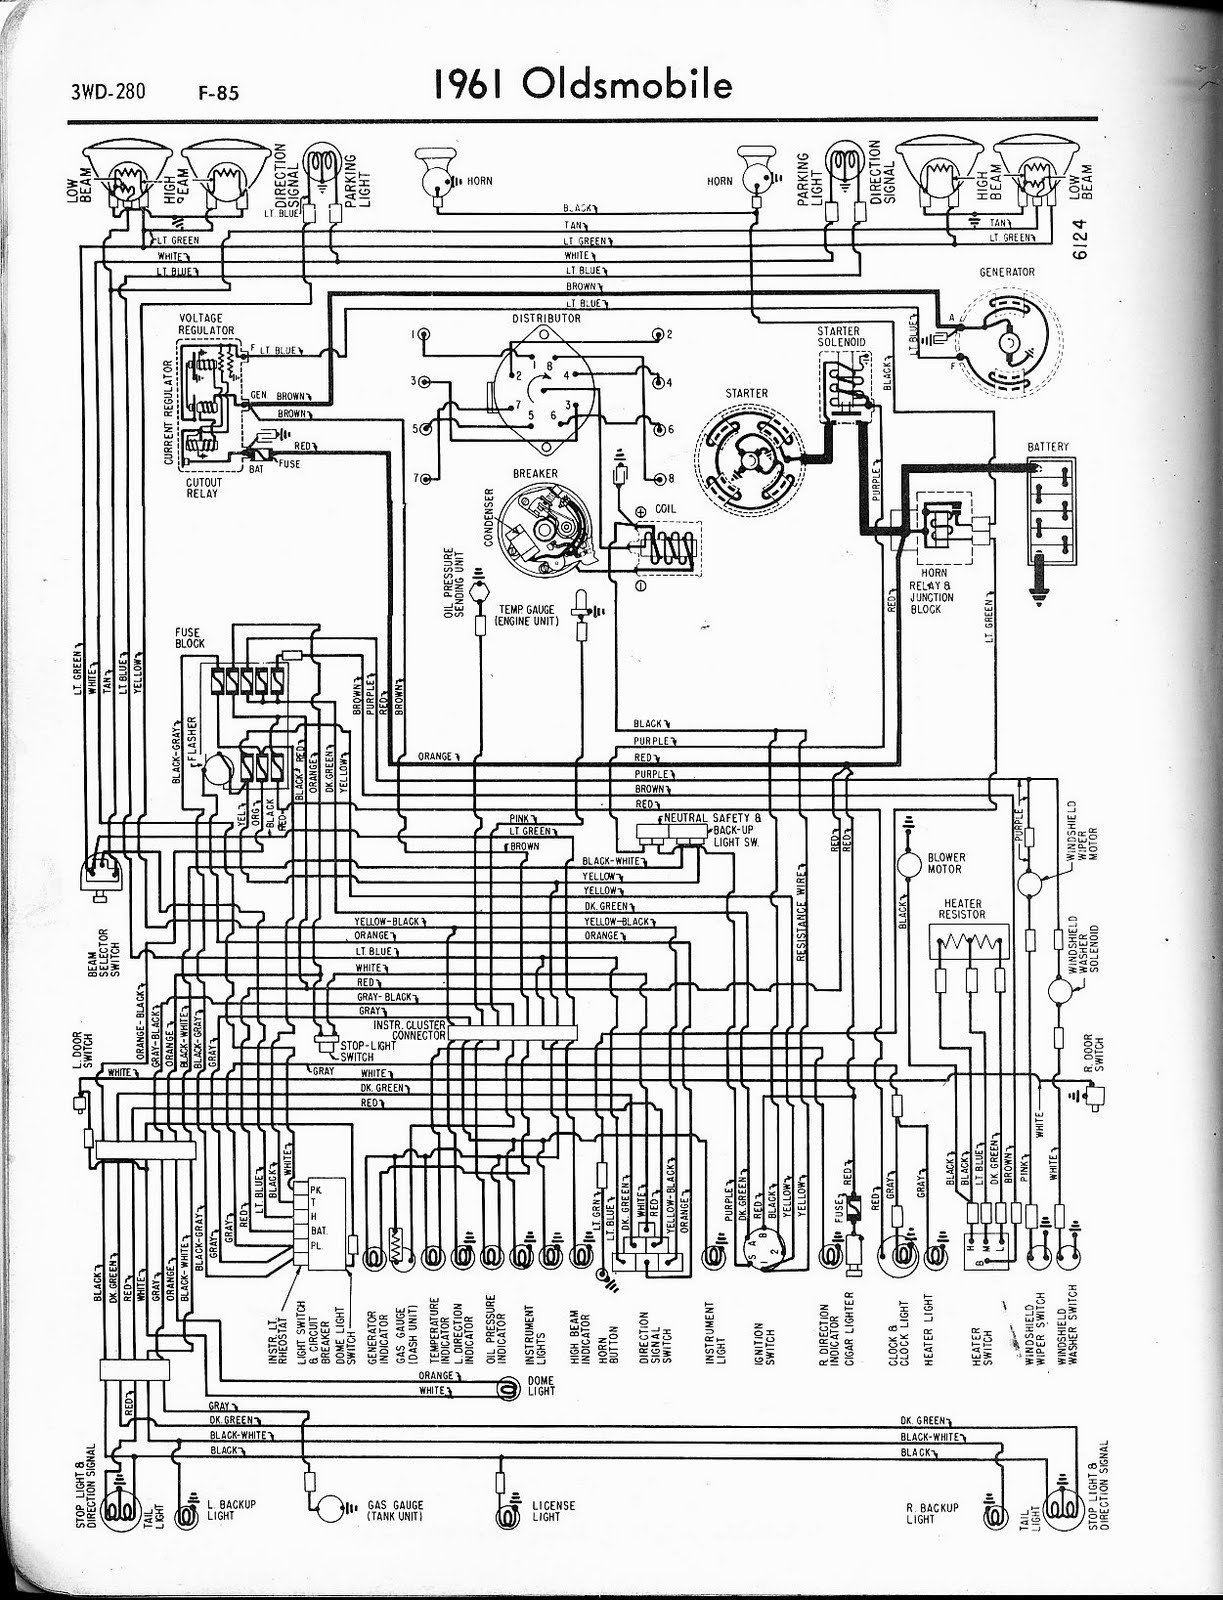 Car Wiring Diagram Free : Free auto wiring diagram april